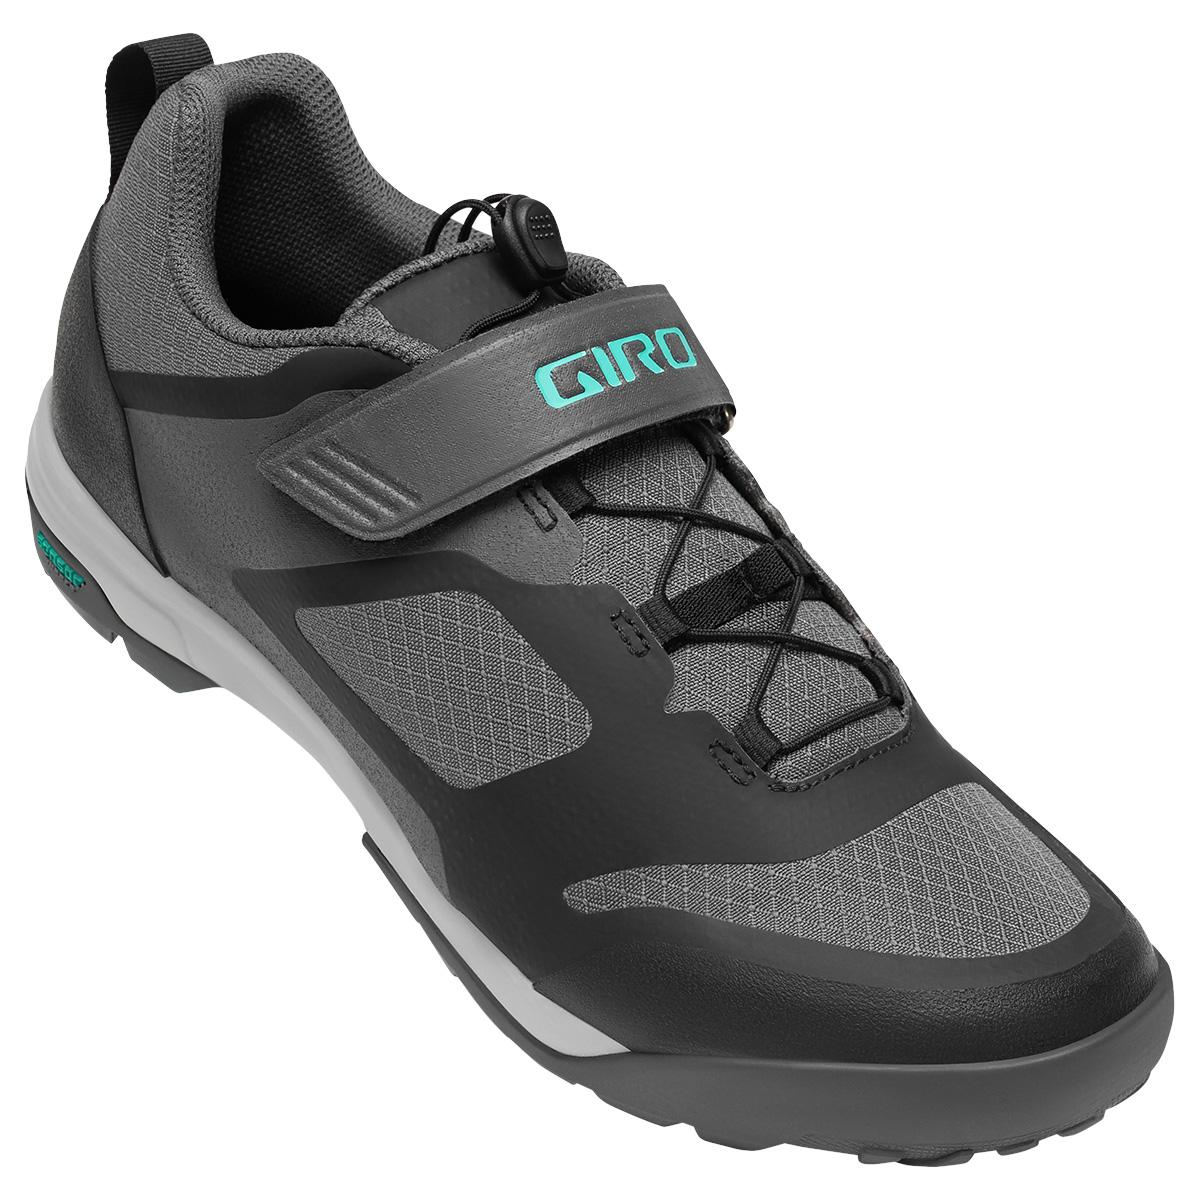 Giro women's Ventana Fastlace Shoe in Dark Shadow front view